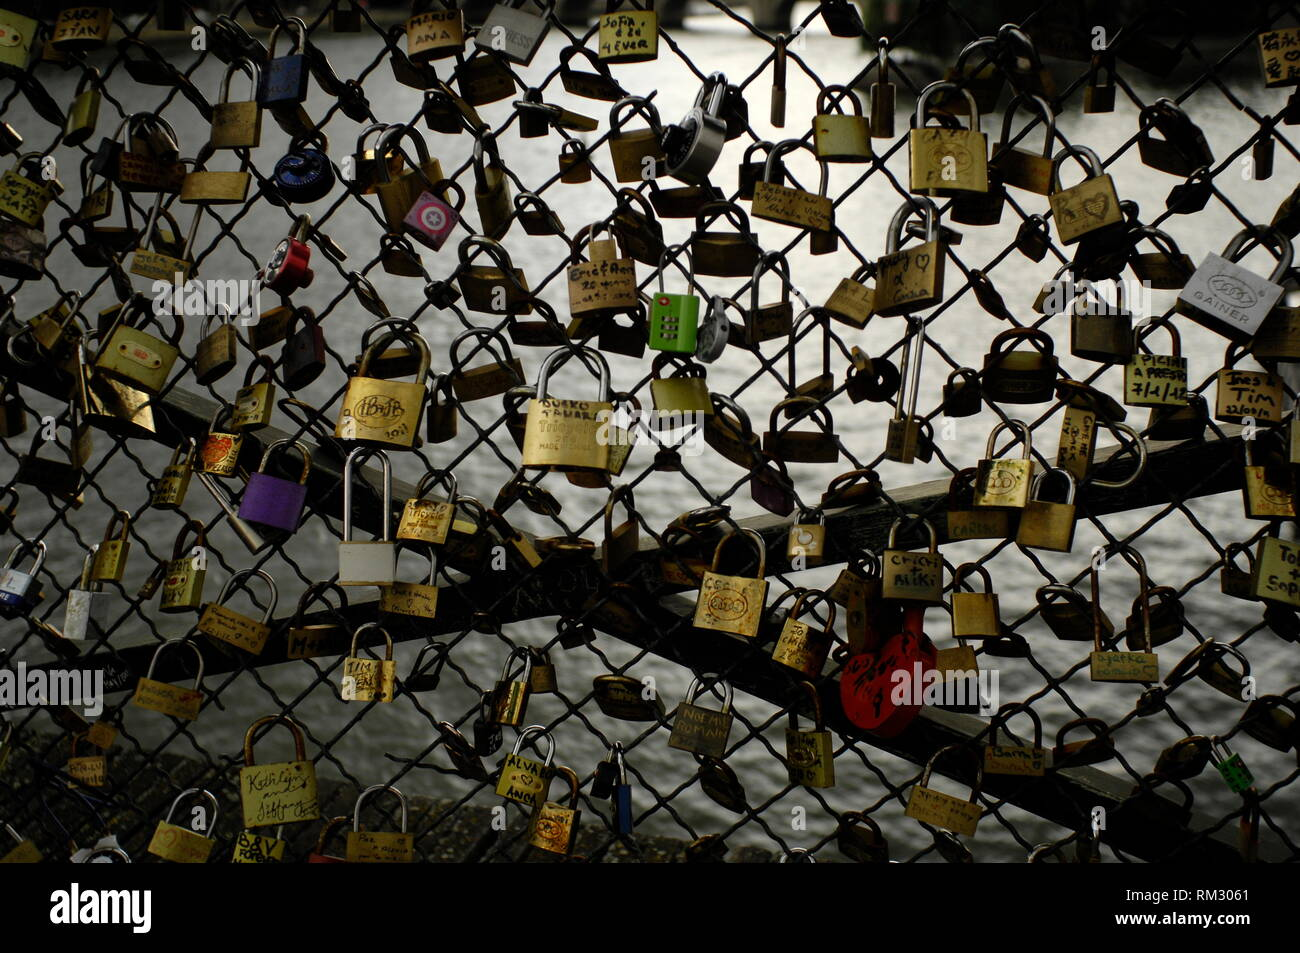 AJAXNETPHOTO. JUNE, 2012. PARIS, FRANCE. - LOVE LOCKED BRIDGE - LOVE LOCKS ON PONT DES ARTES. BY 2015 THE WEIGHT OF THE LOCKS - ABOUT A MILLION - WAS ESTIMATED AT 45 TONNES, DAMAGING SECTIONS OF THE BRIDGE. THE CITY REMOVED LOCKS AND REPLACED THEM WITH PANELS OF STREET ART.PHOTO:JONATHAN EASTLAND/AJAX REF:D121506_2833 - Stock Image